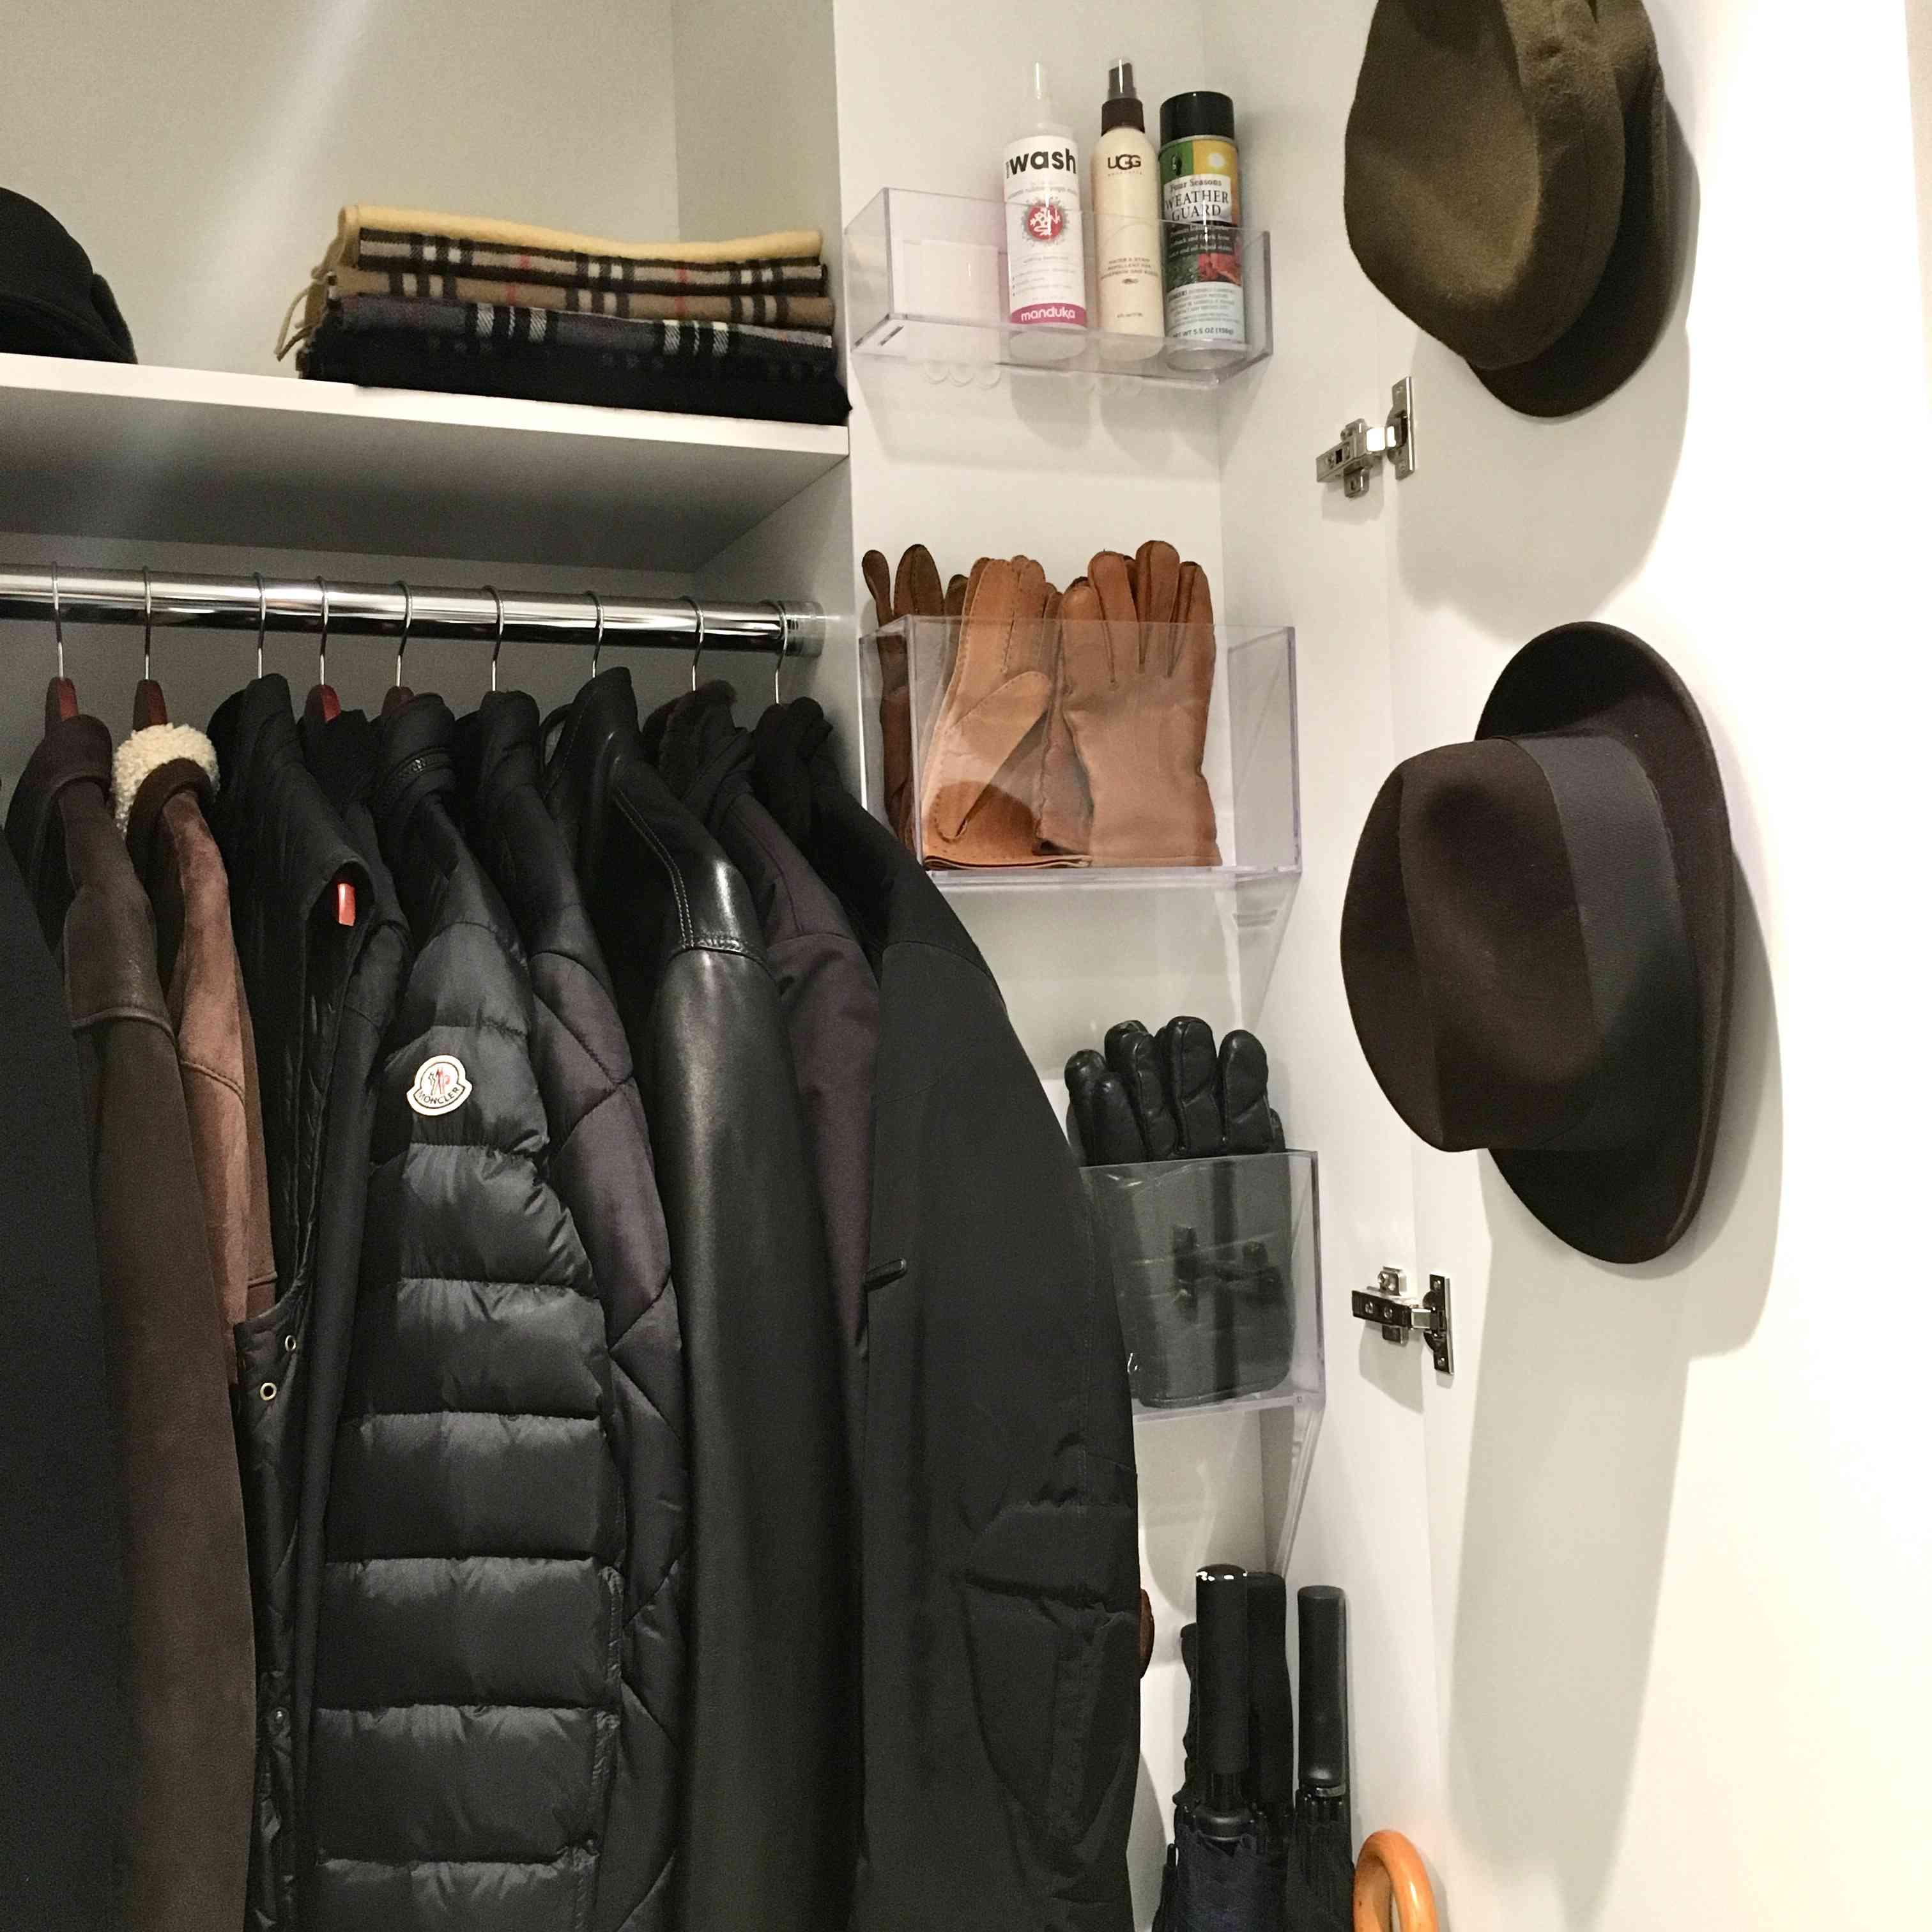 Closet with hats hanging